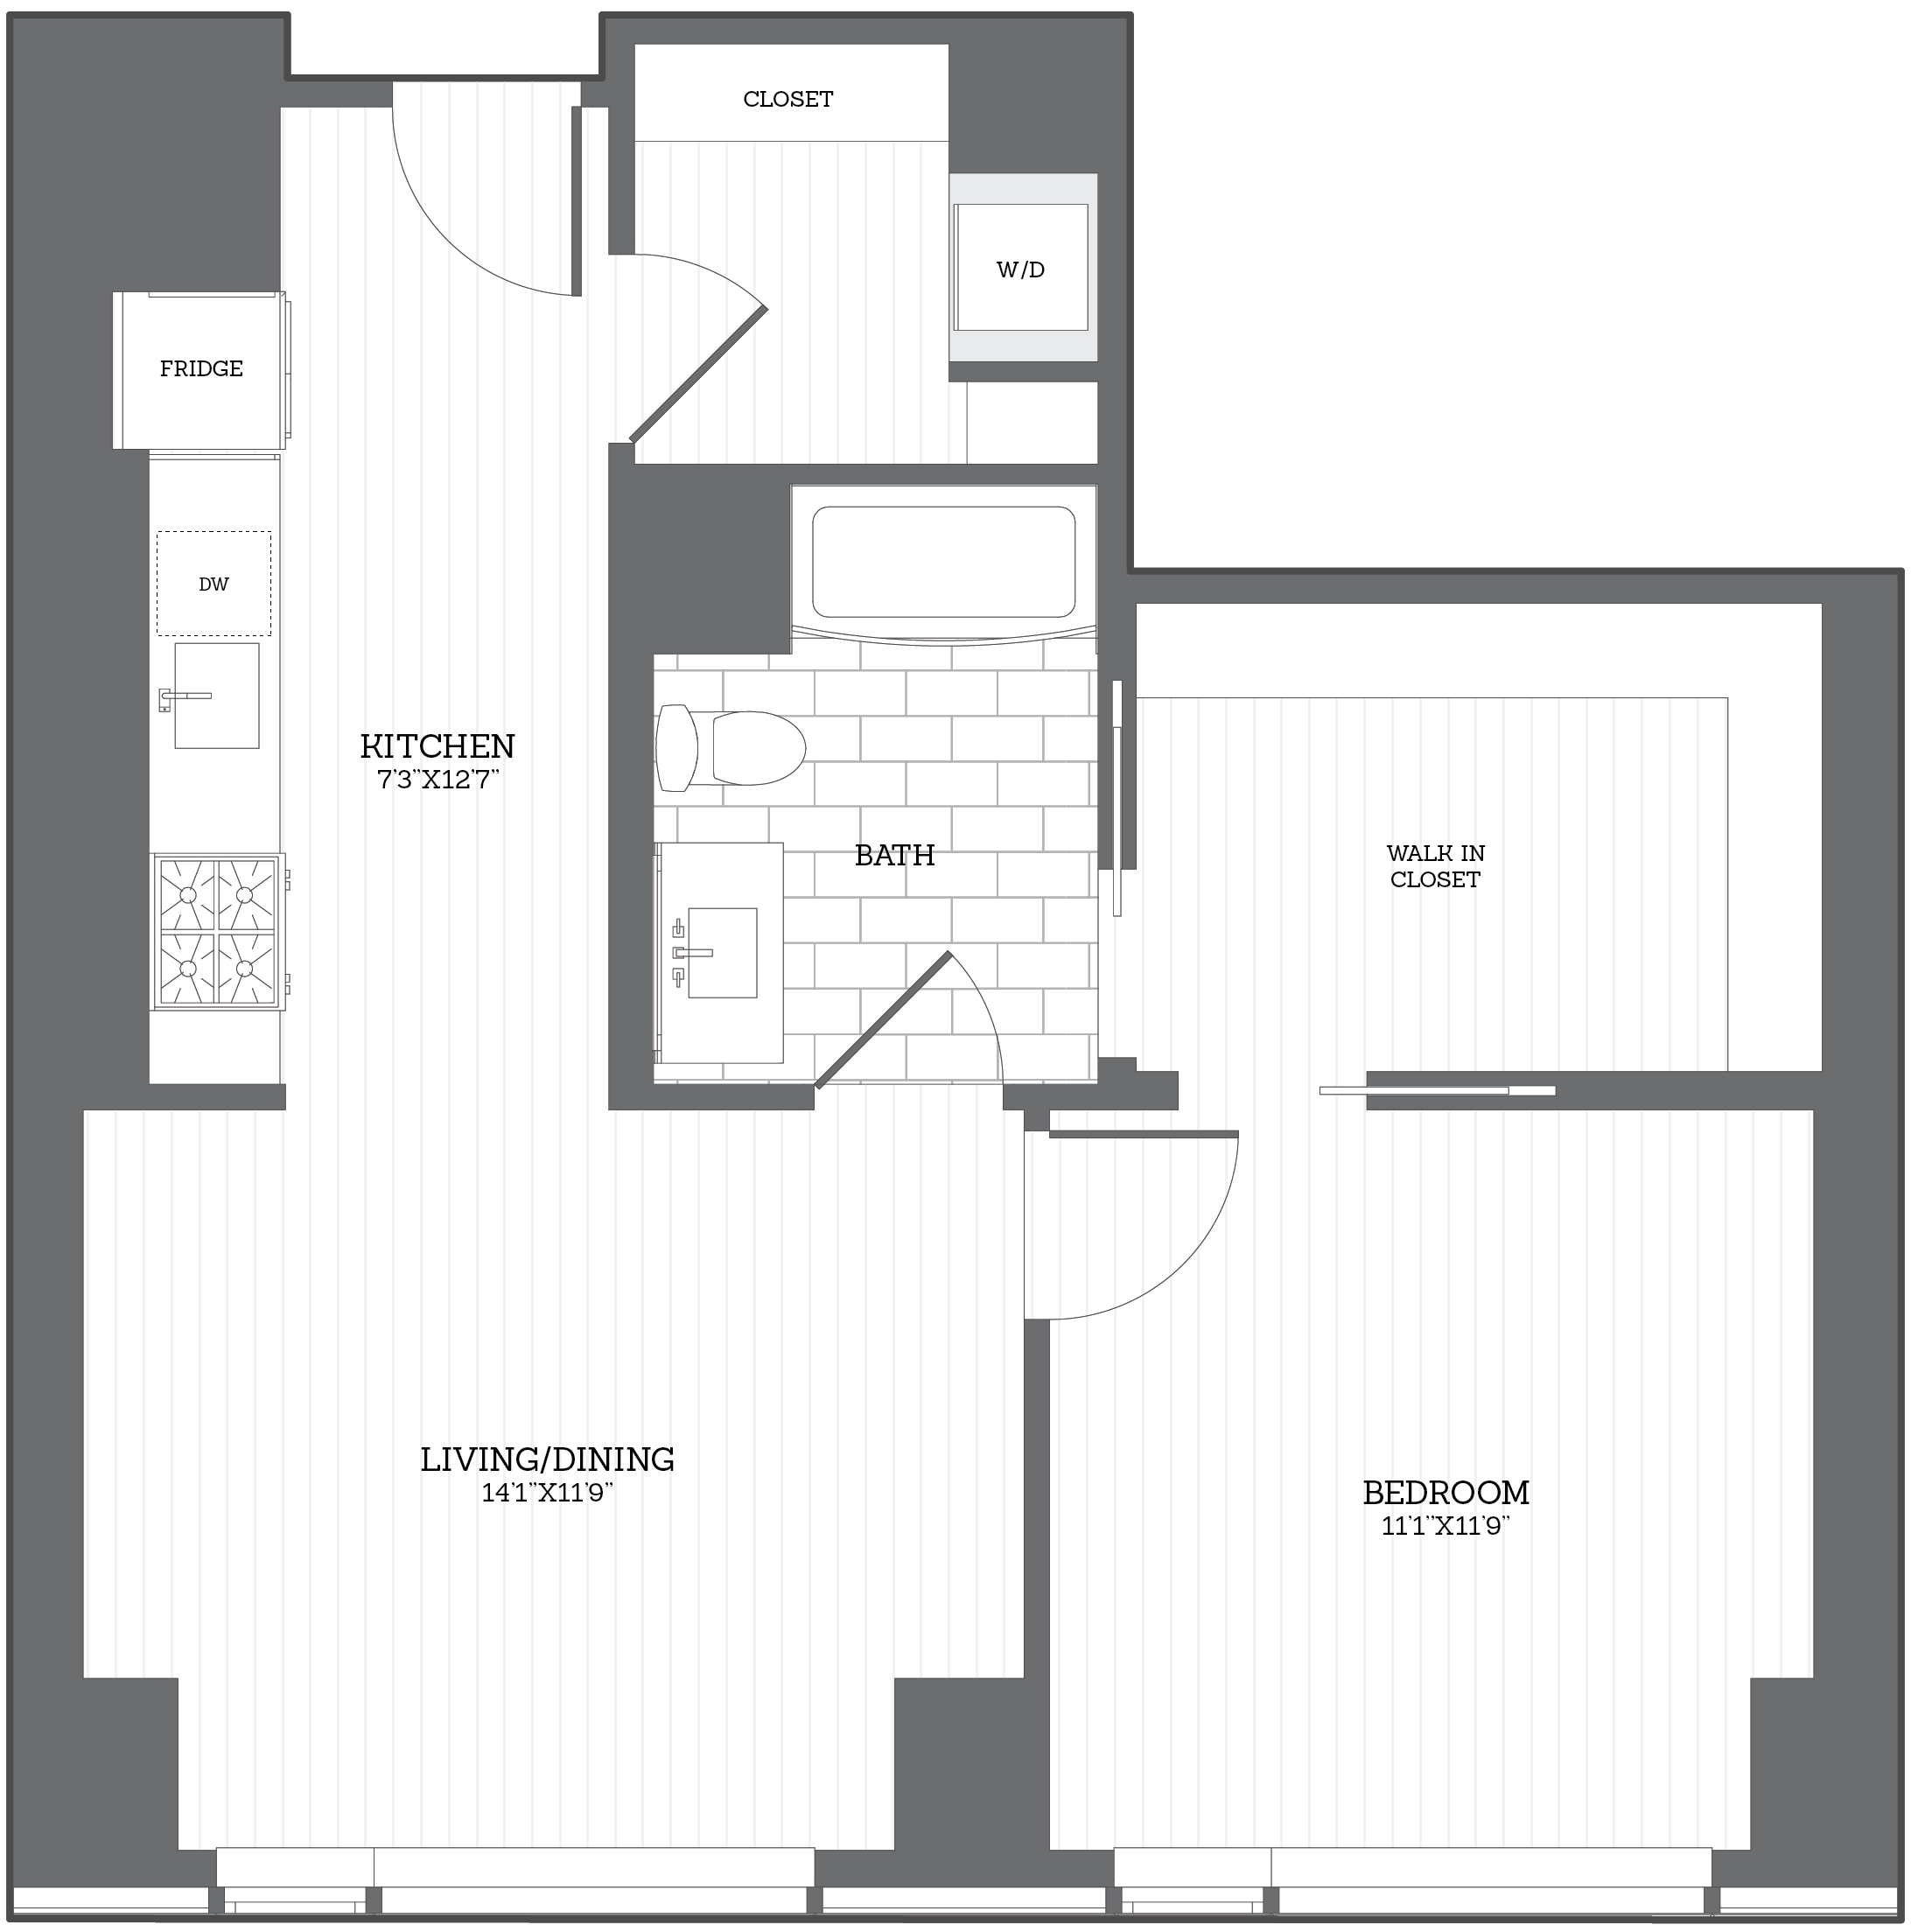 floor plans 30 dalton apartments the bozzuto group bozzuto